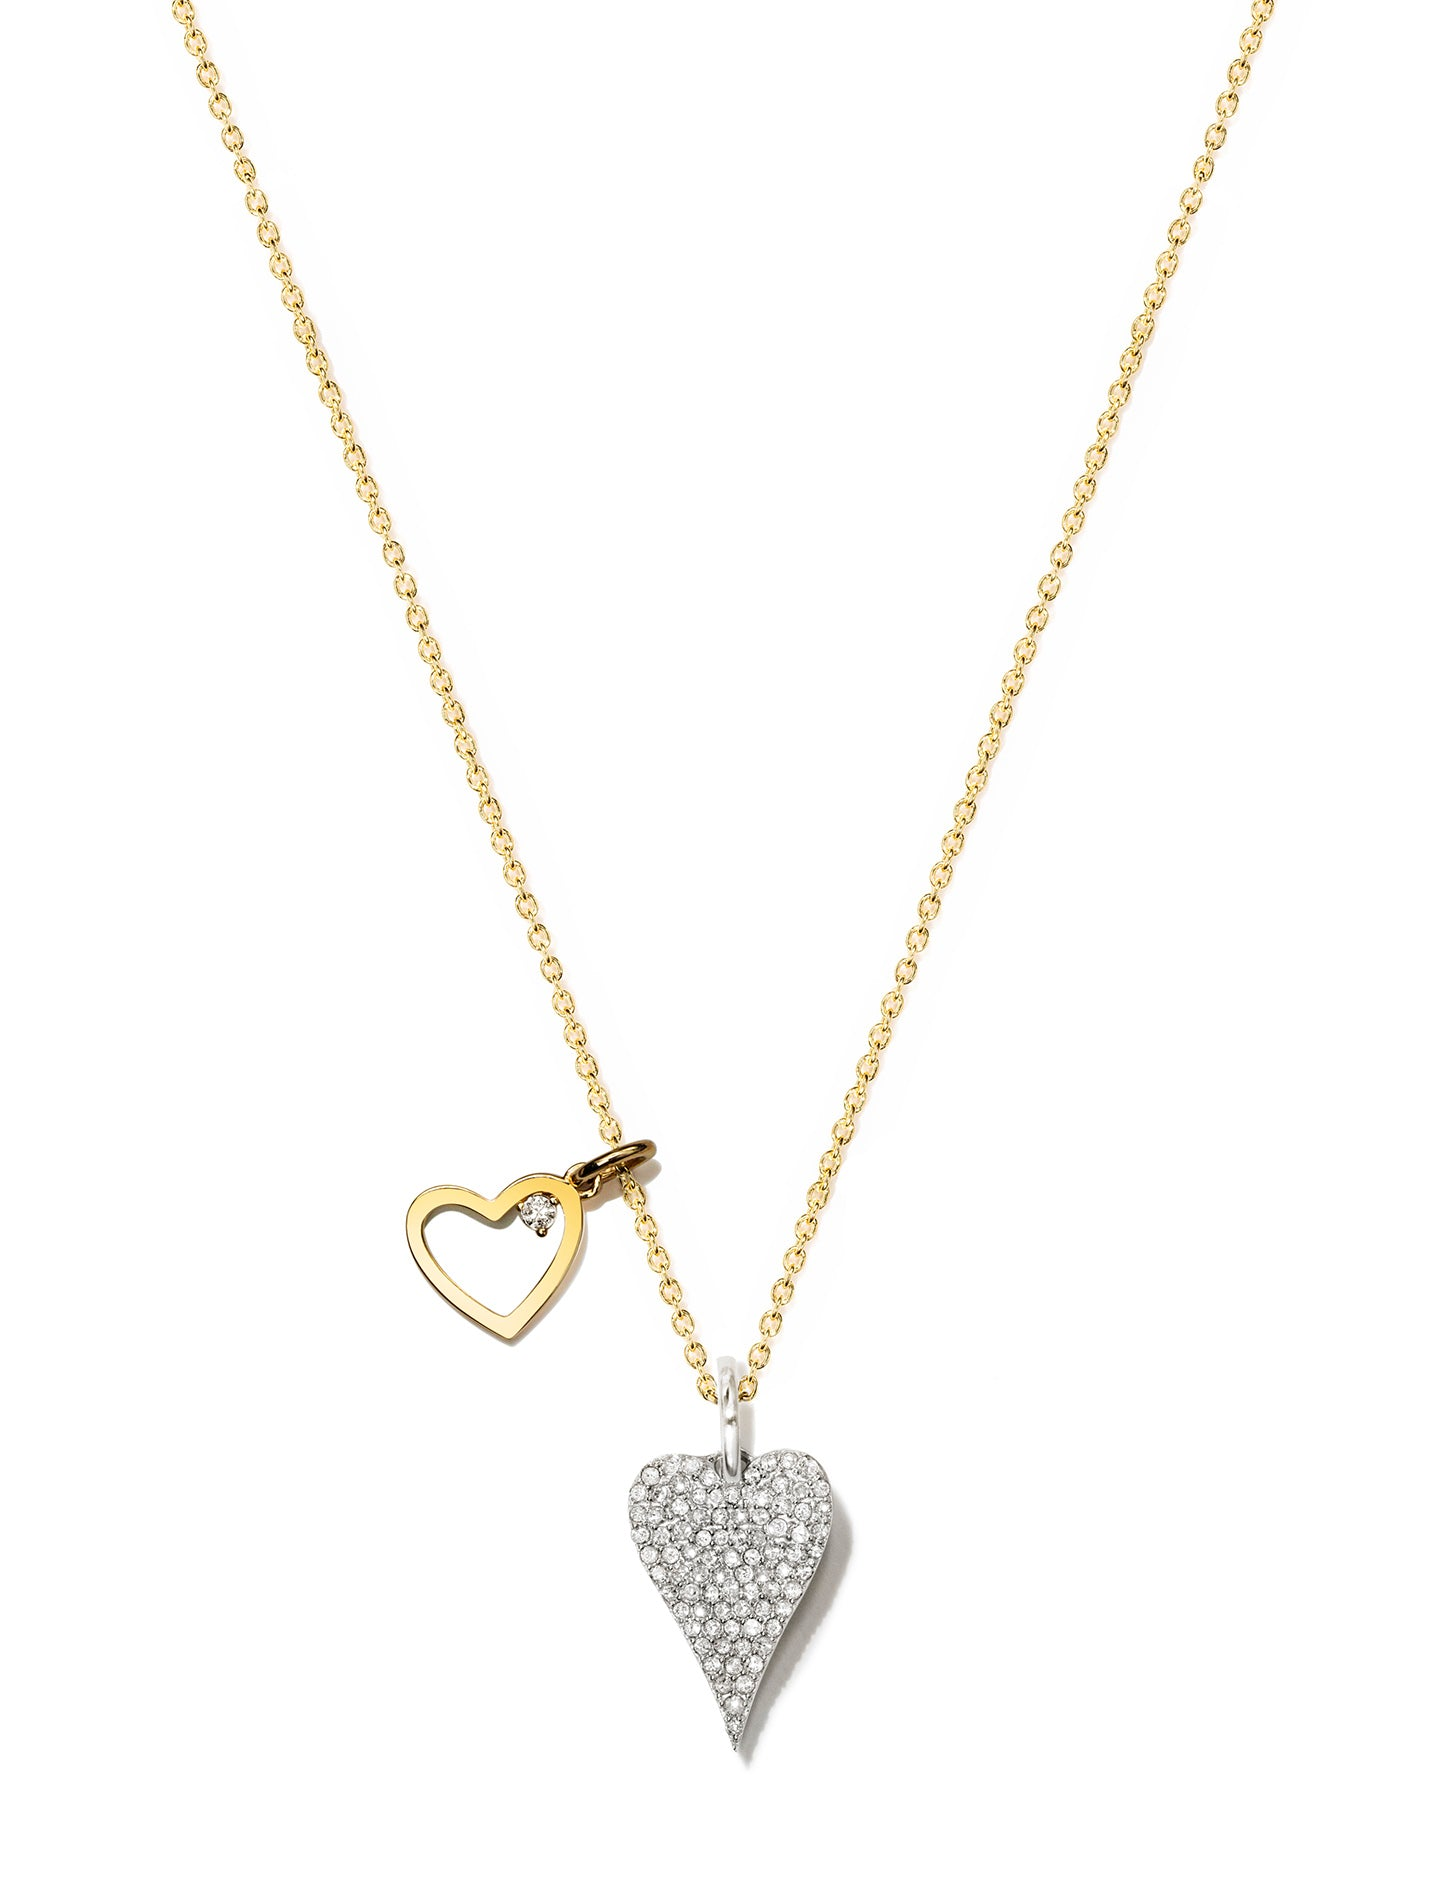 Pave Heart Pendant with Heart Necklace